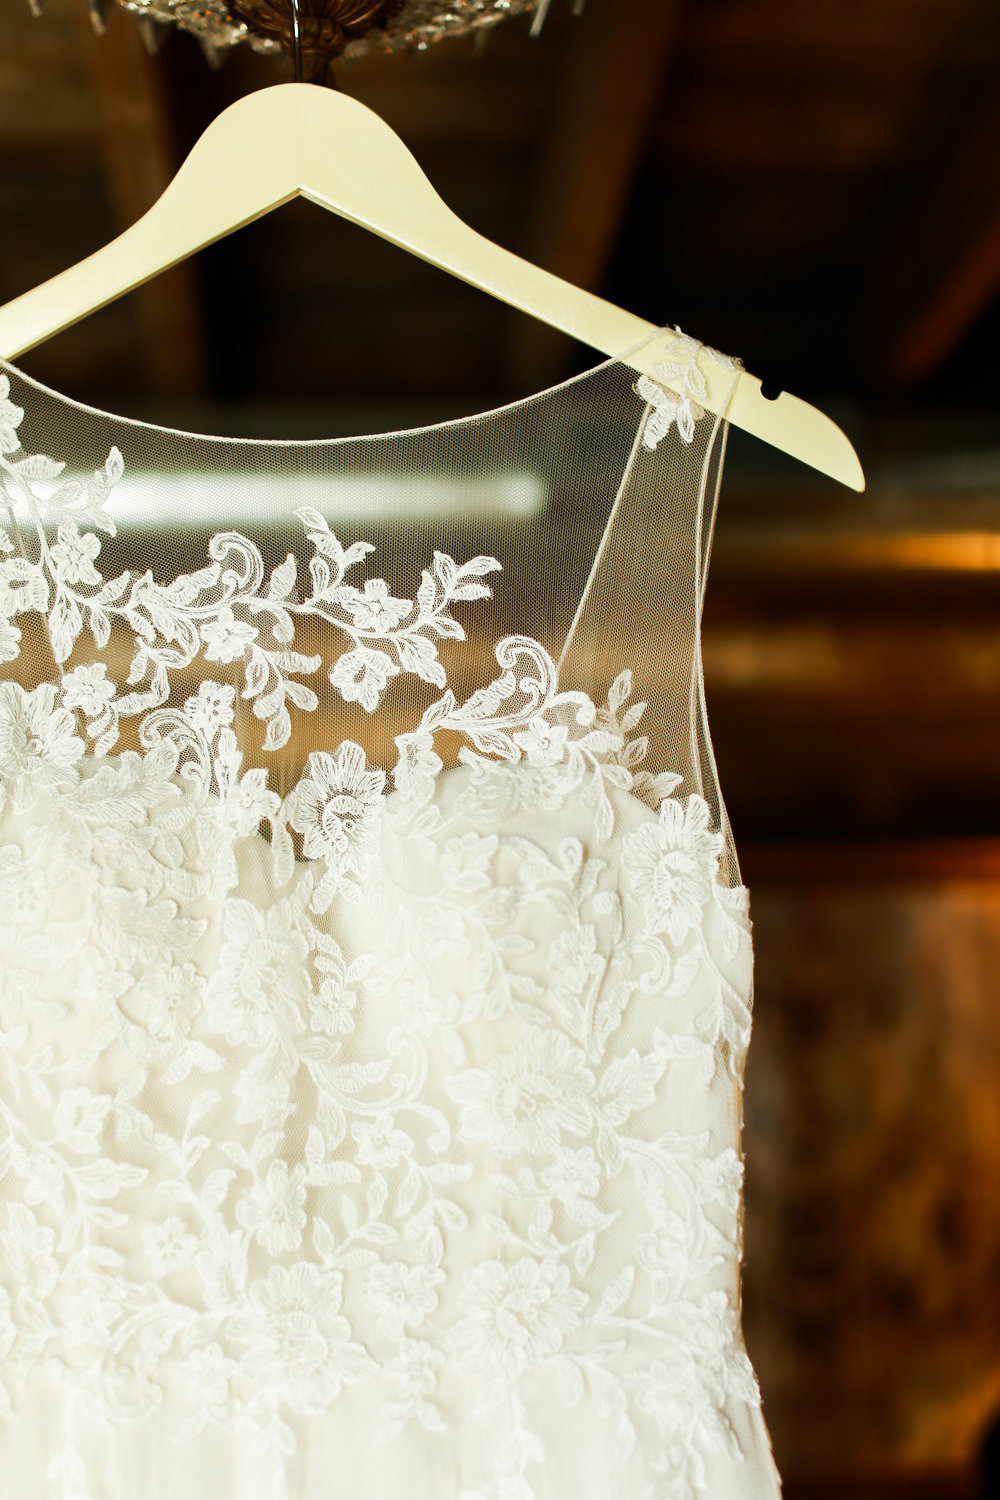 Jenna Kevin Wedding | Hannah Schmitt Photography | Legacy Hill Farm | dress details | lace sheer top wedding |